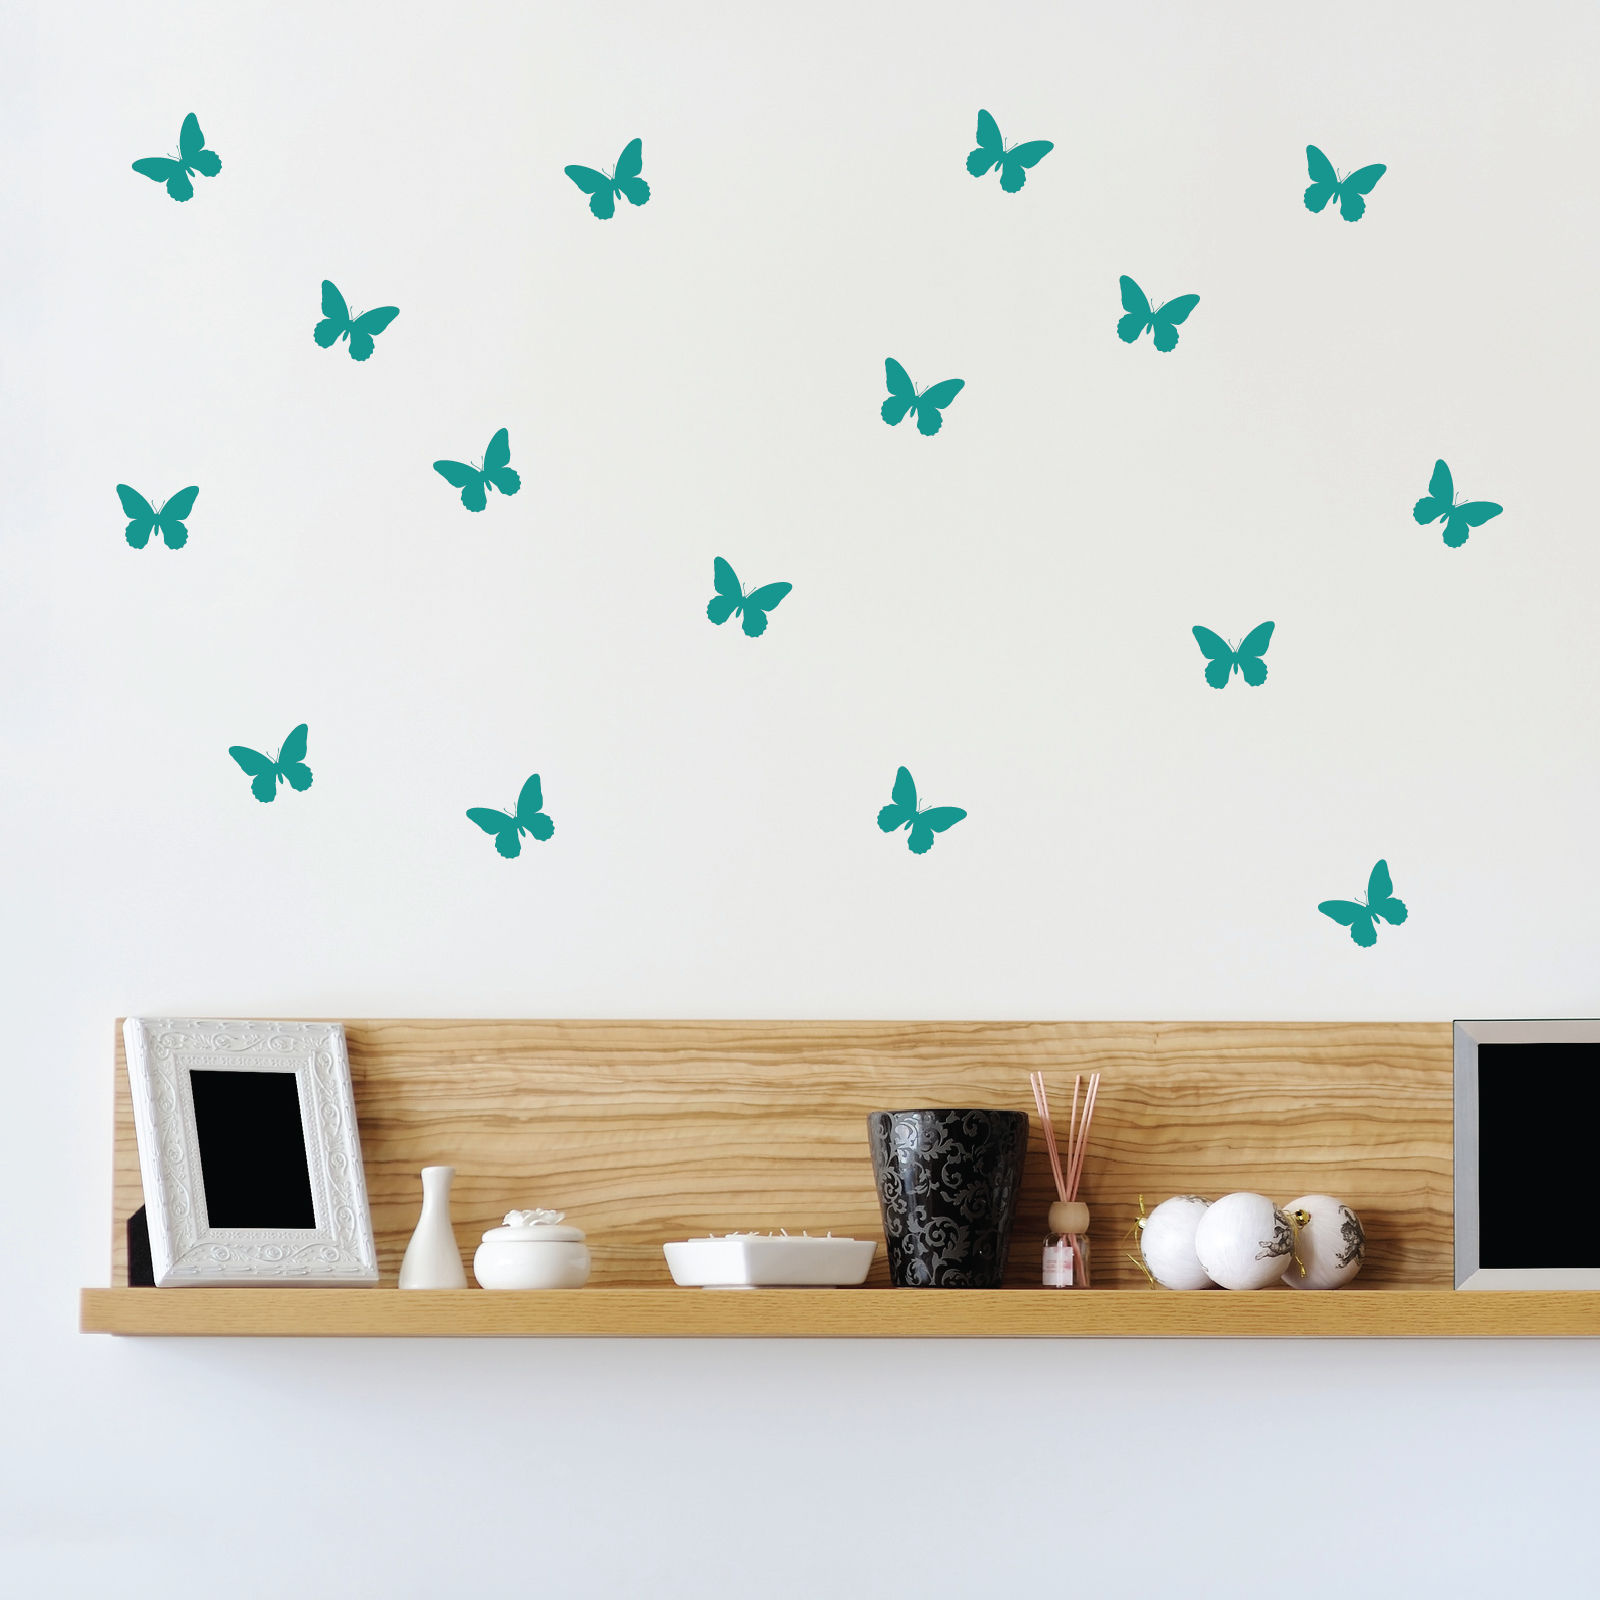 Buy bathroom wall stencils and get free shipping on AliExpress.com for Butterfly Wall Art Stencil  lp0lpmzq